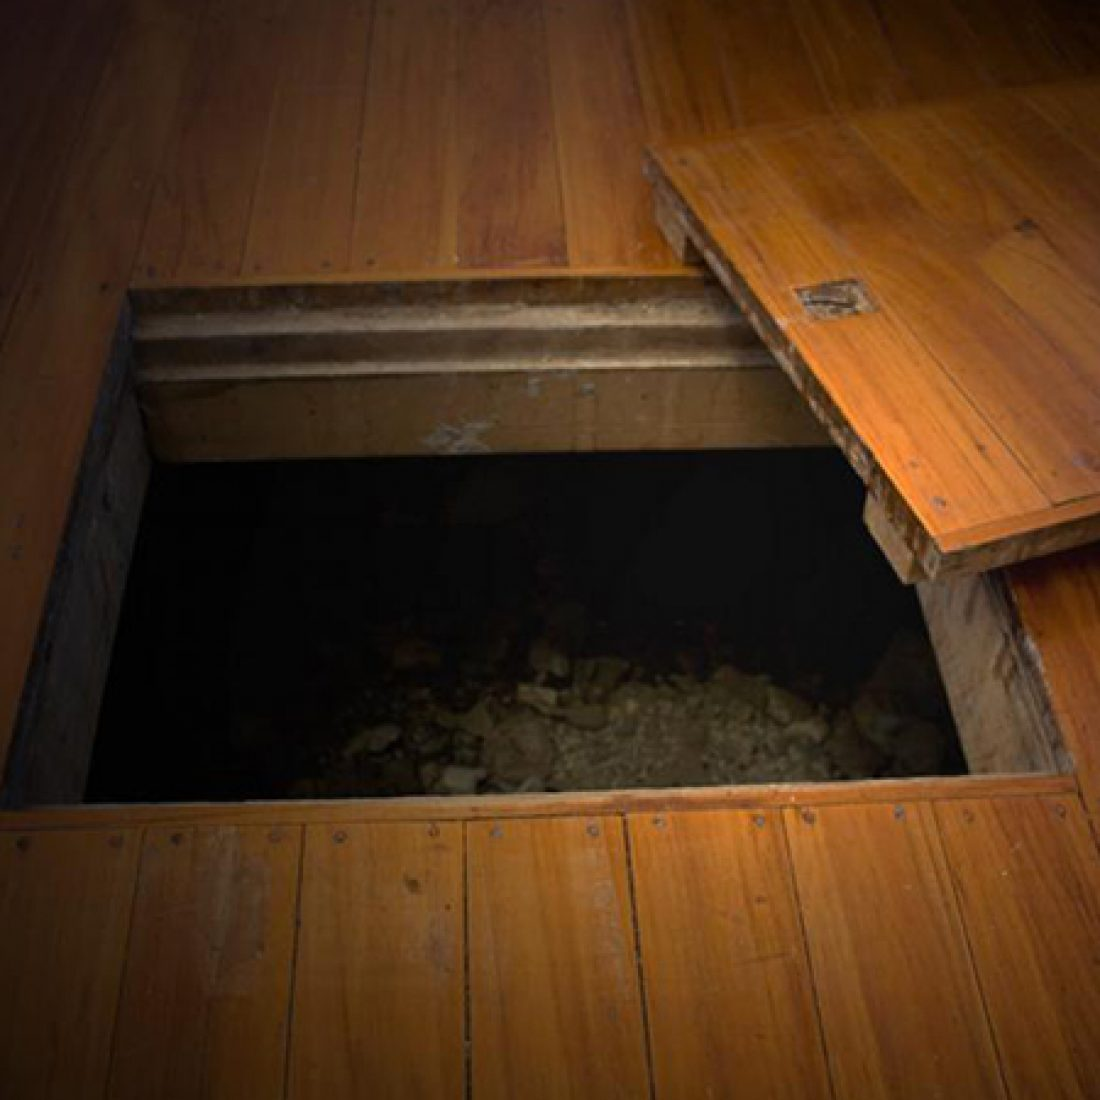 Criminal Frequenting Is A Trap Door That Should Be